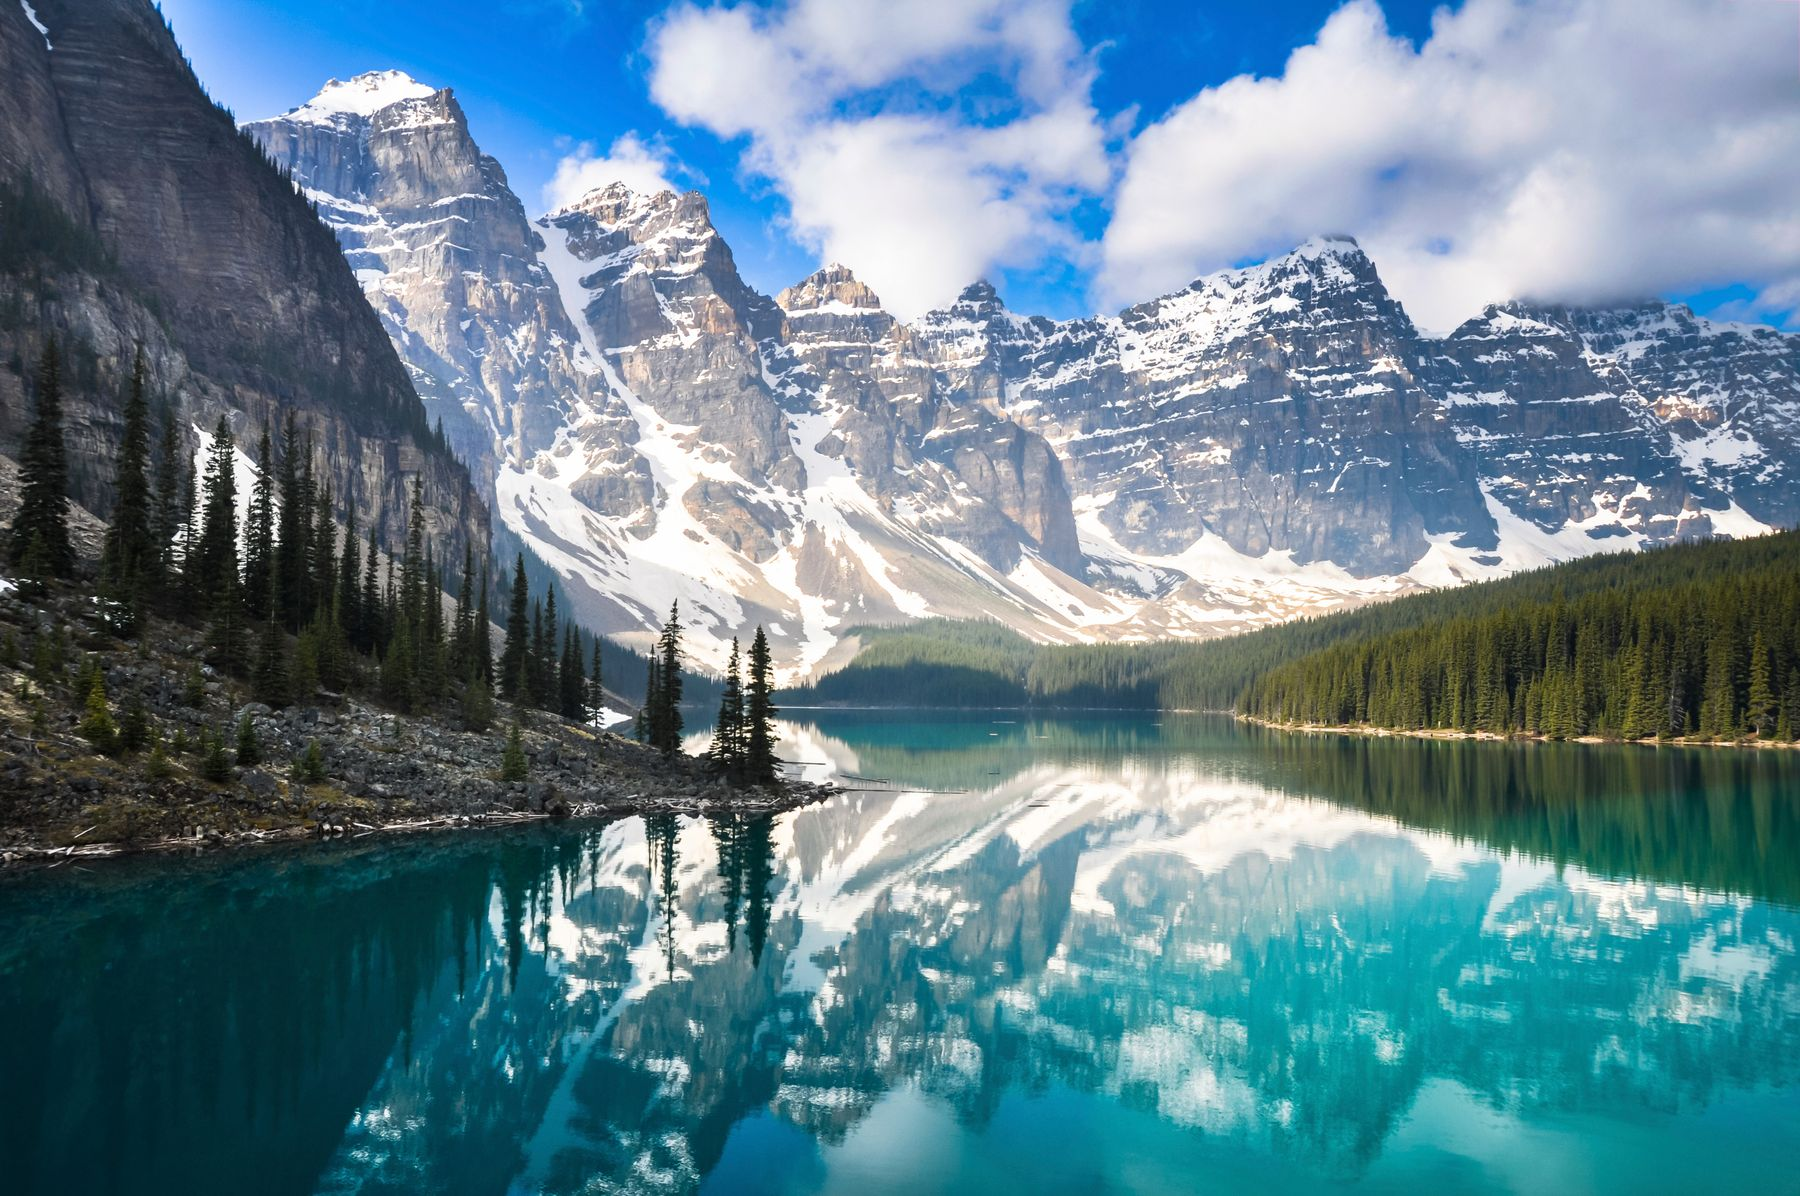 Lake Louise in the Canadian Rockies, a dream vacation destination